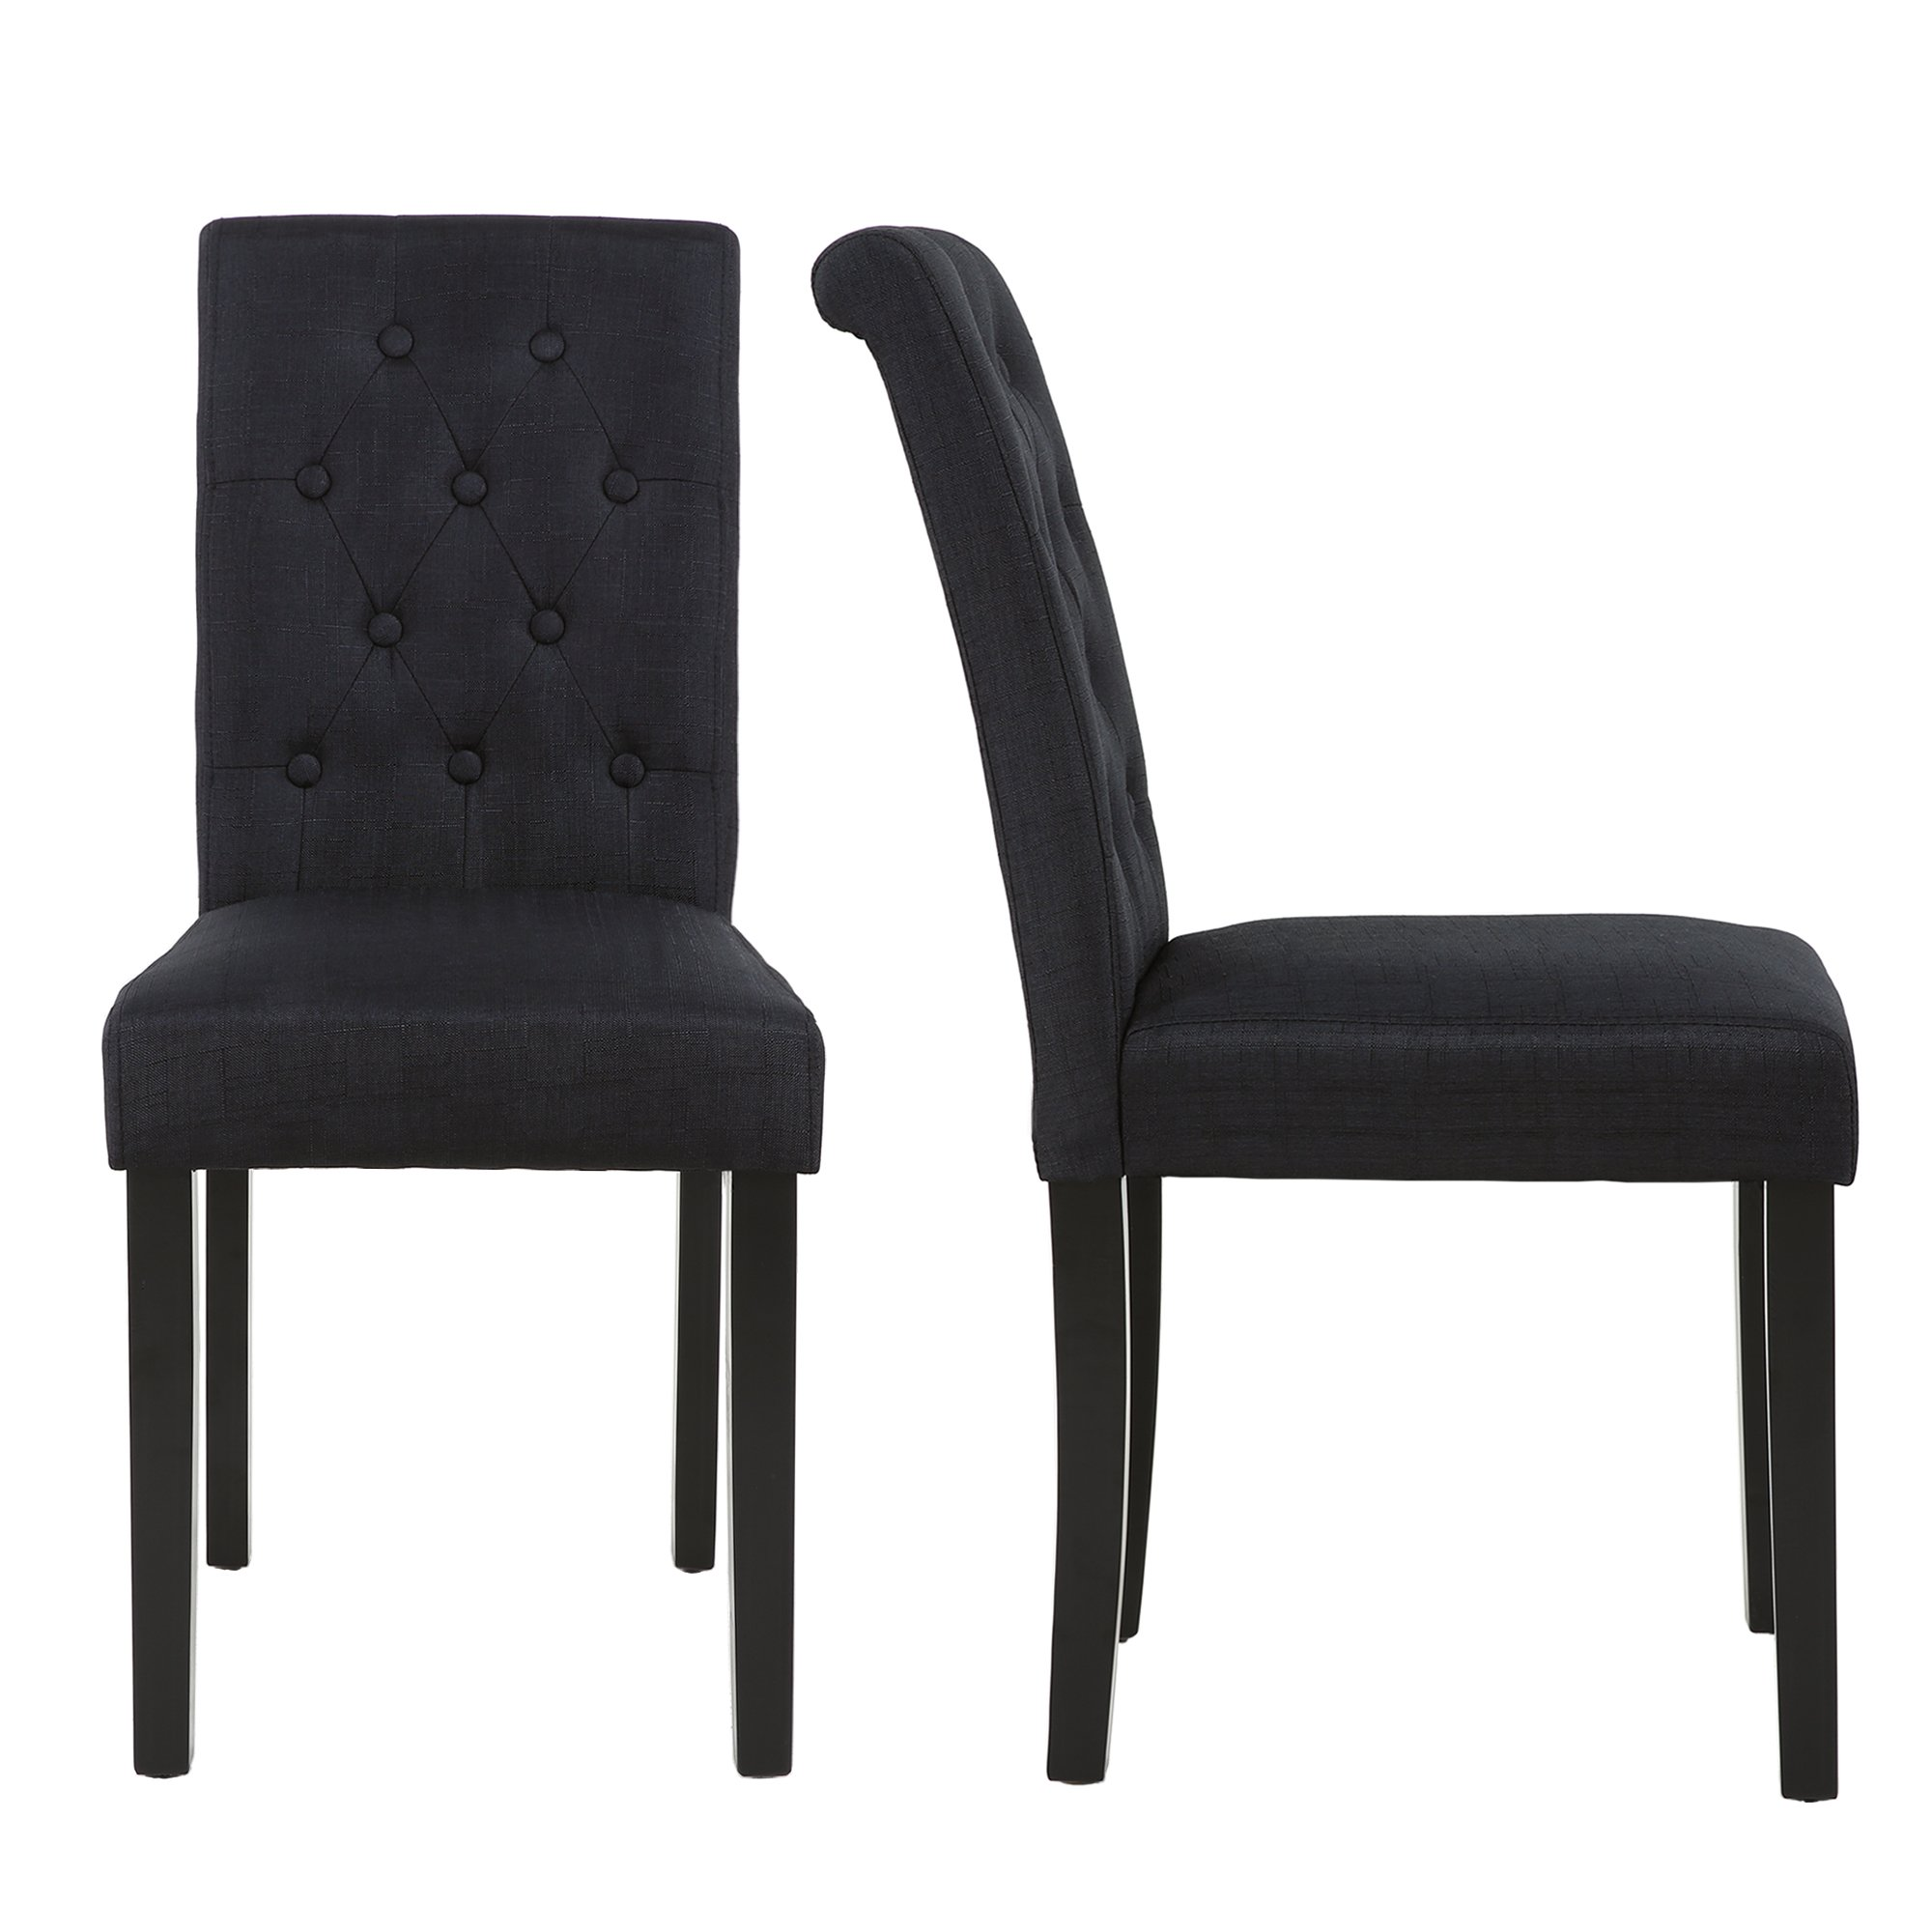 Set of 2 Upholstered Fabric Dining Chair with Button-Tufted Details (Black)